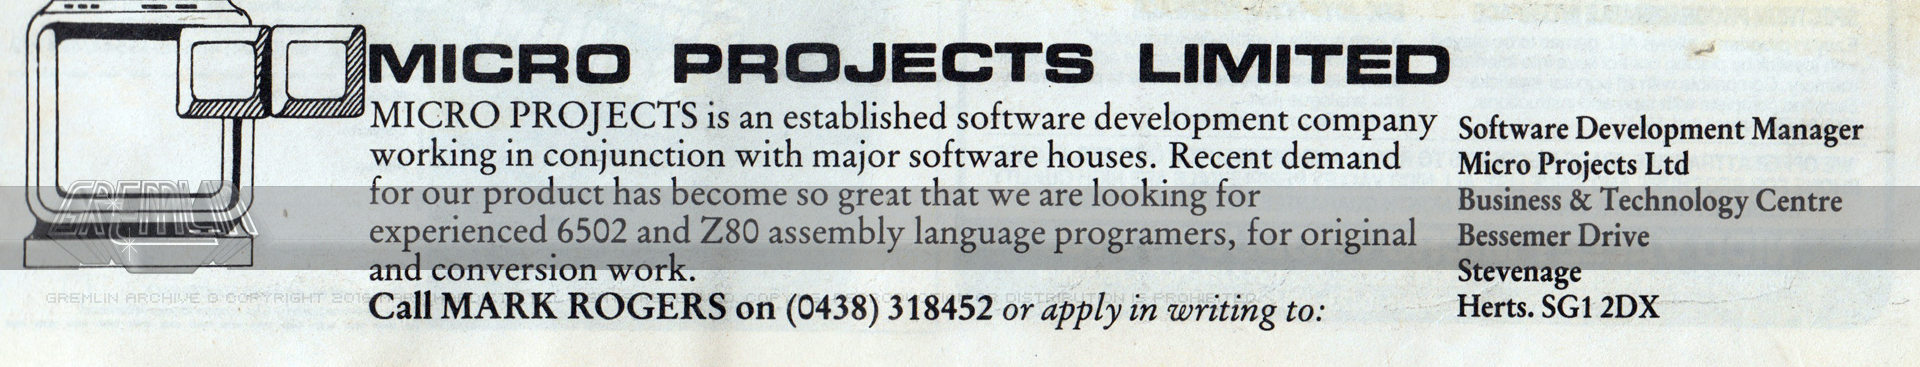 Micro Projects Recruitment Advert